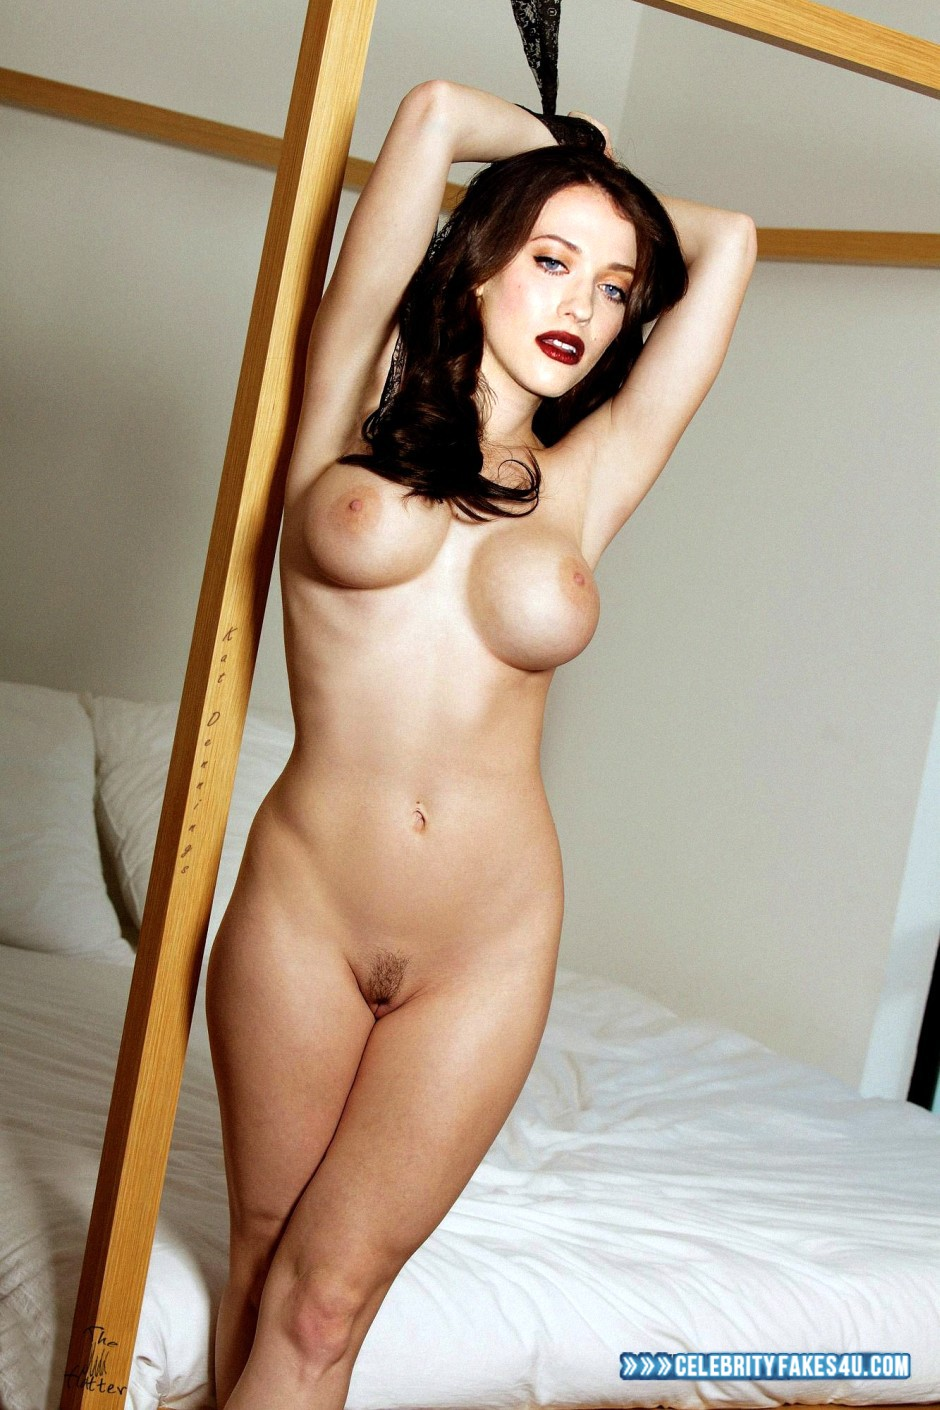 Intelligible Kat dennings nude fakes